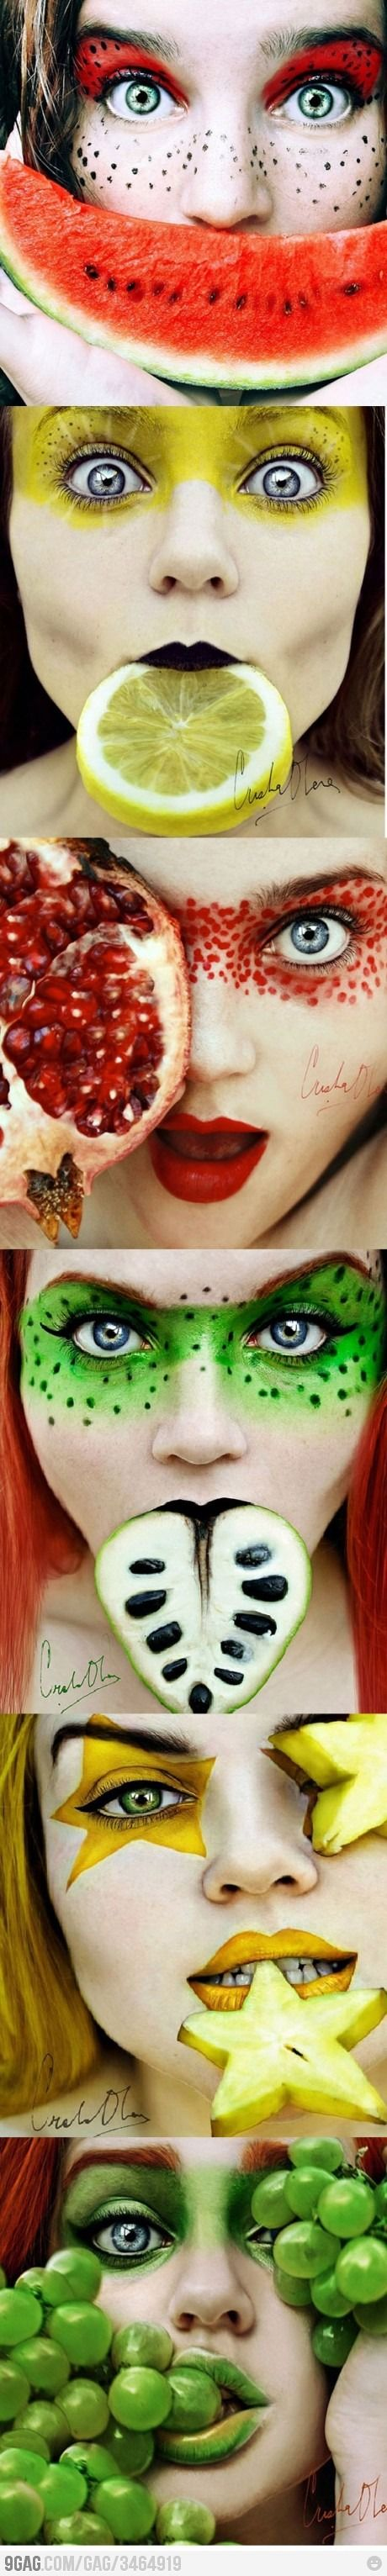 """A very nice series of self-portraits entitled ""Tutti Frutti"" by 16-year old Spanish photographer Cristina Otero. Blending close-ups with fruits and wild make-up, the artist draws the viewers into an unconventional and colourful notion of beauty. With just a couple years of experience in photography, this prowess is the expression of true talent."""